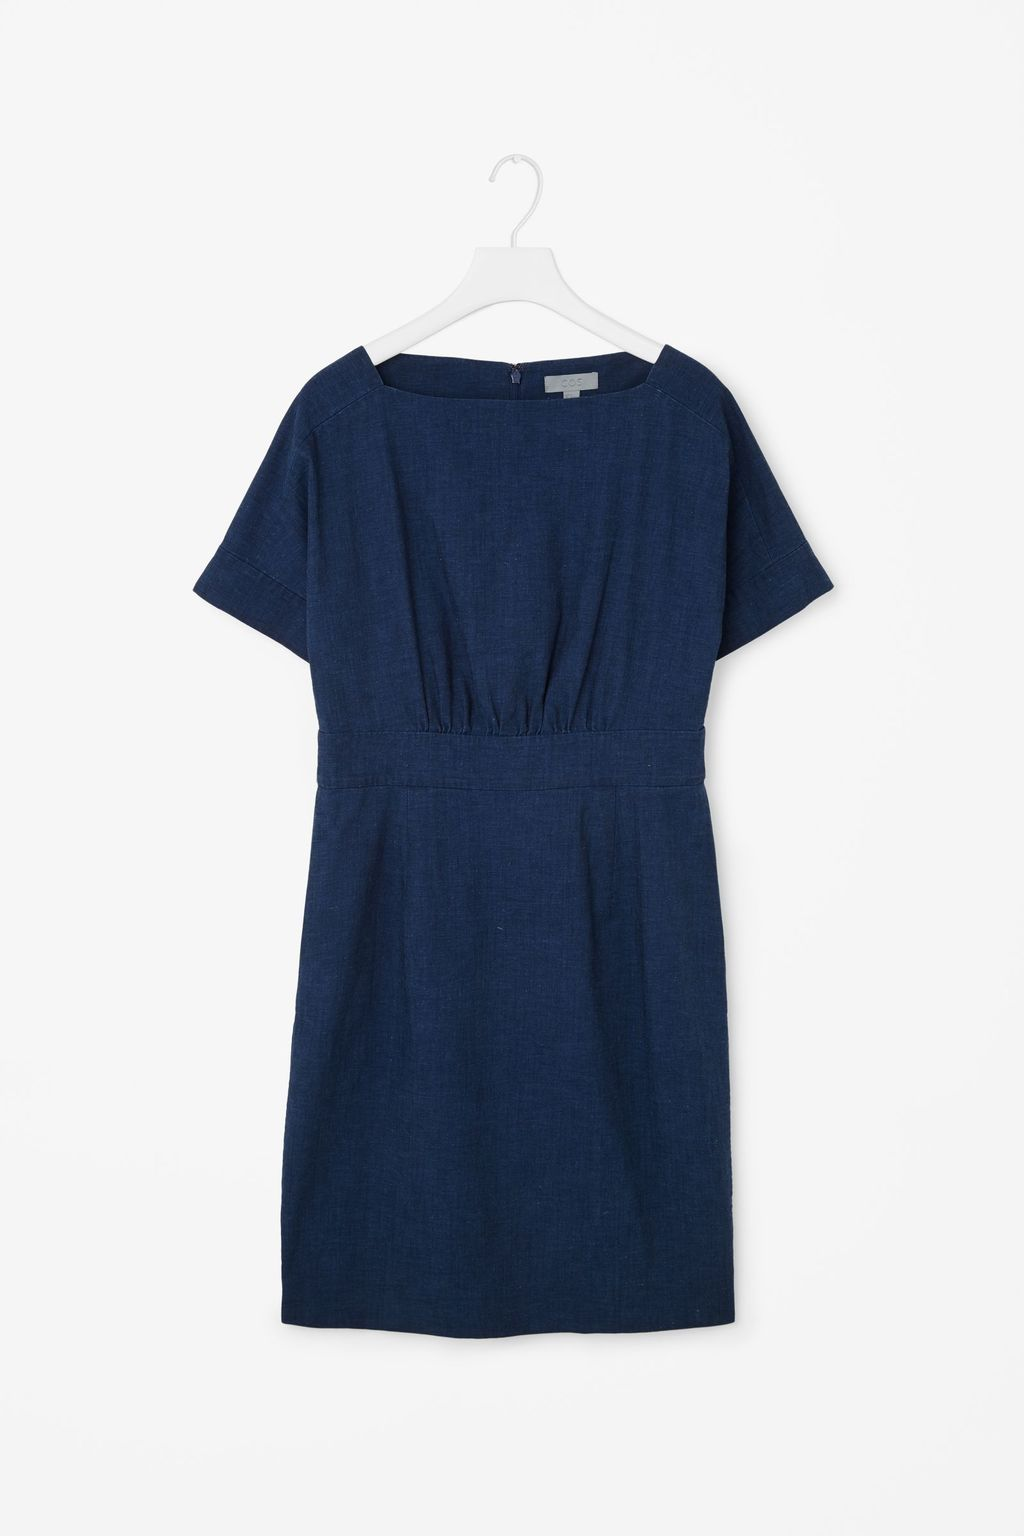 Wide Neck Denim Dress - style: shift; fit: tailored/fitted; pattern: plain; predominant colour: navy; occasions: casual; length: just above the knee; fibres: cotton - 100%; neckline: crew; sleeve length: short sleeve; sleeve style: standard; pattern type: fabric; texture group: other - light to midweight; season: s/s 2016; wardrobe: basic